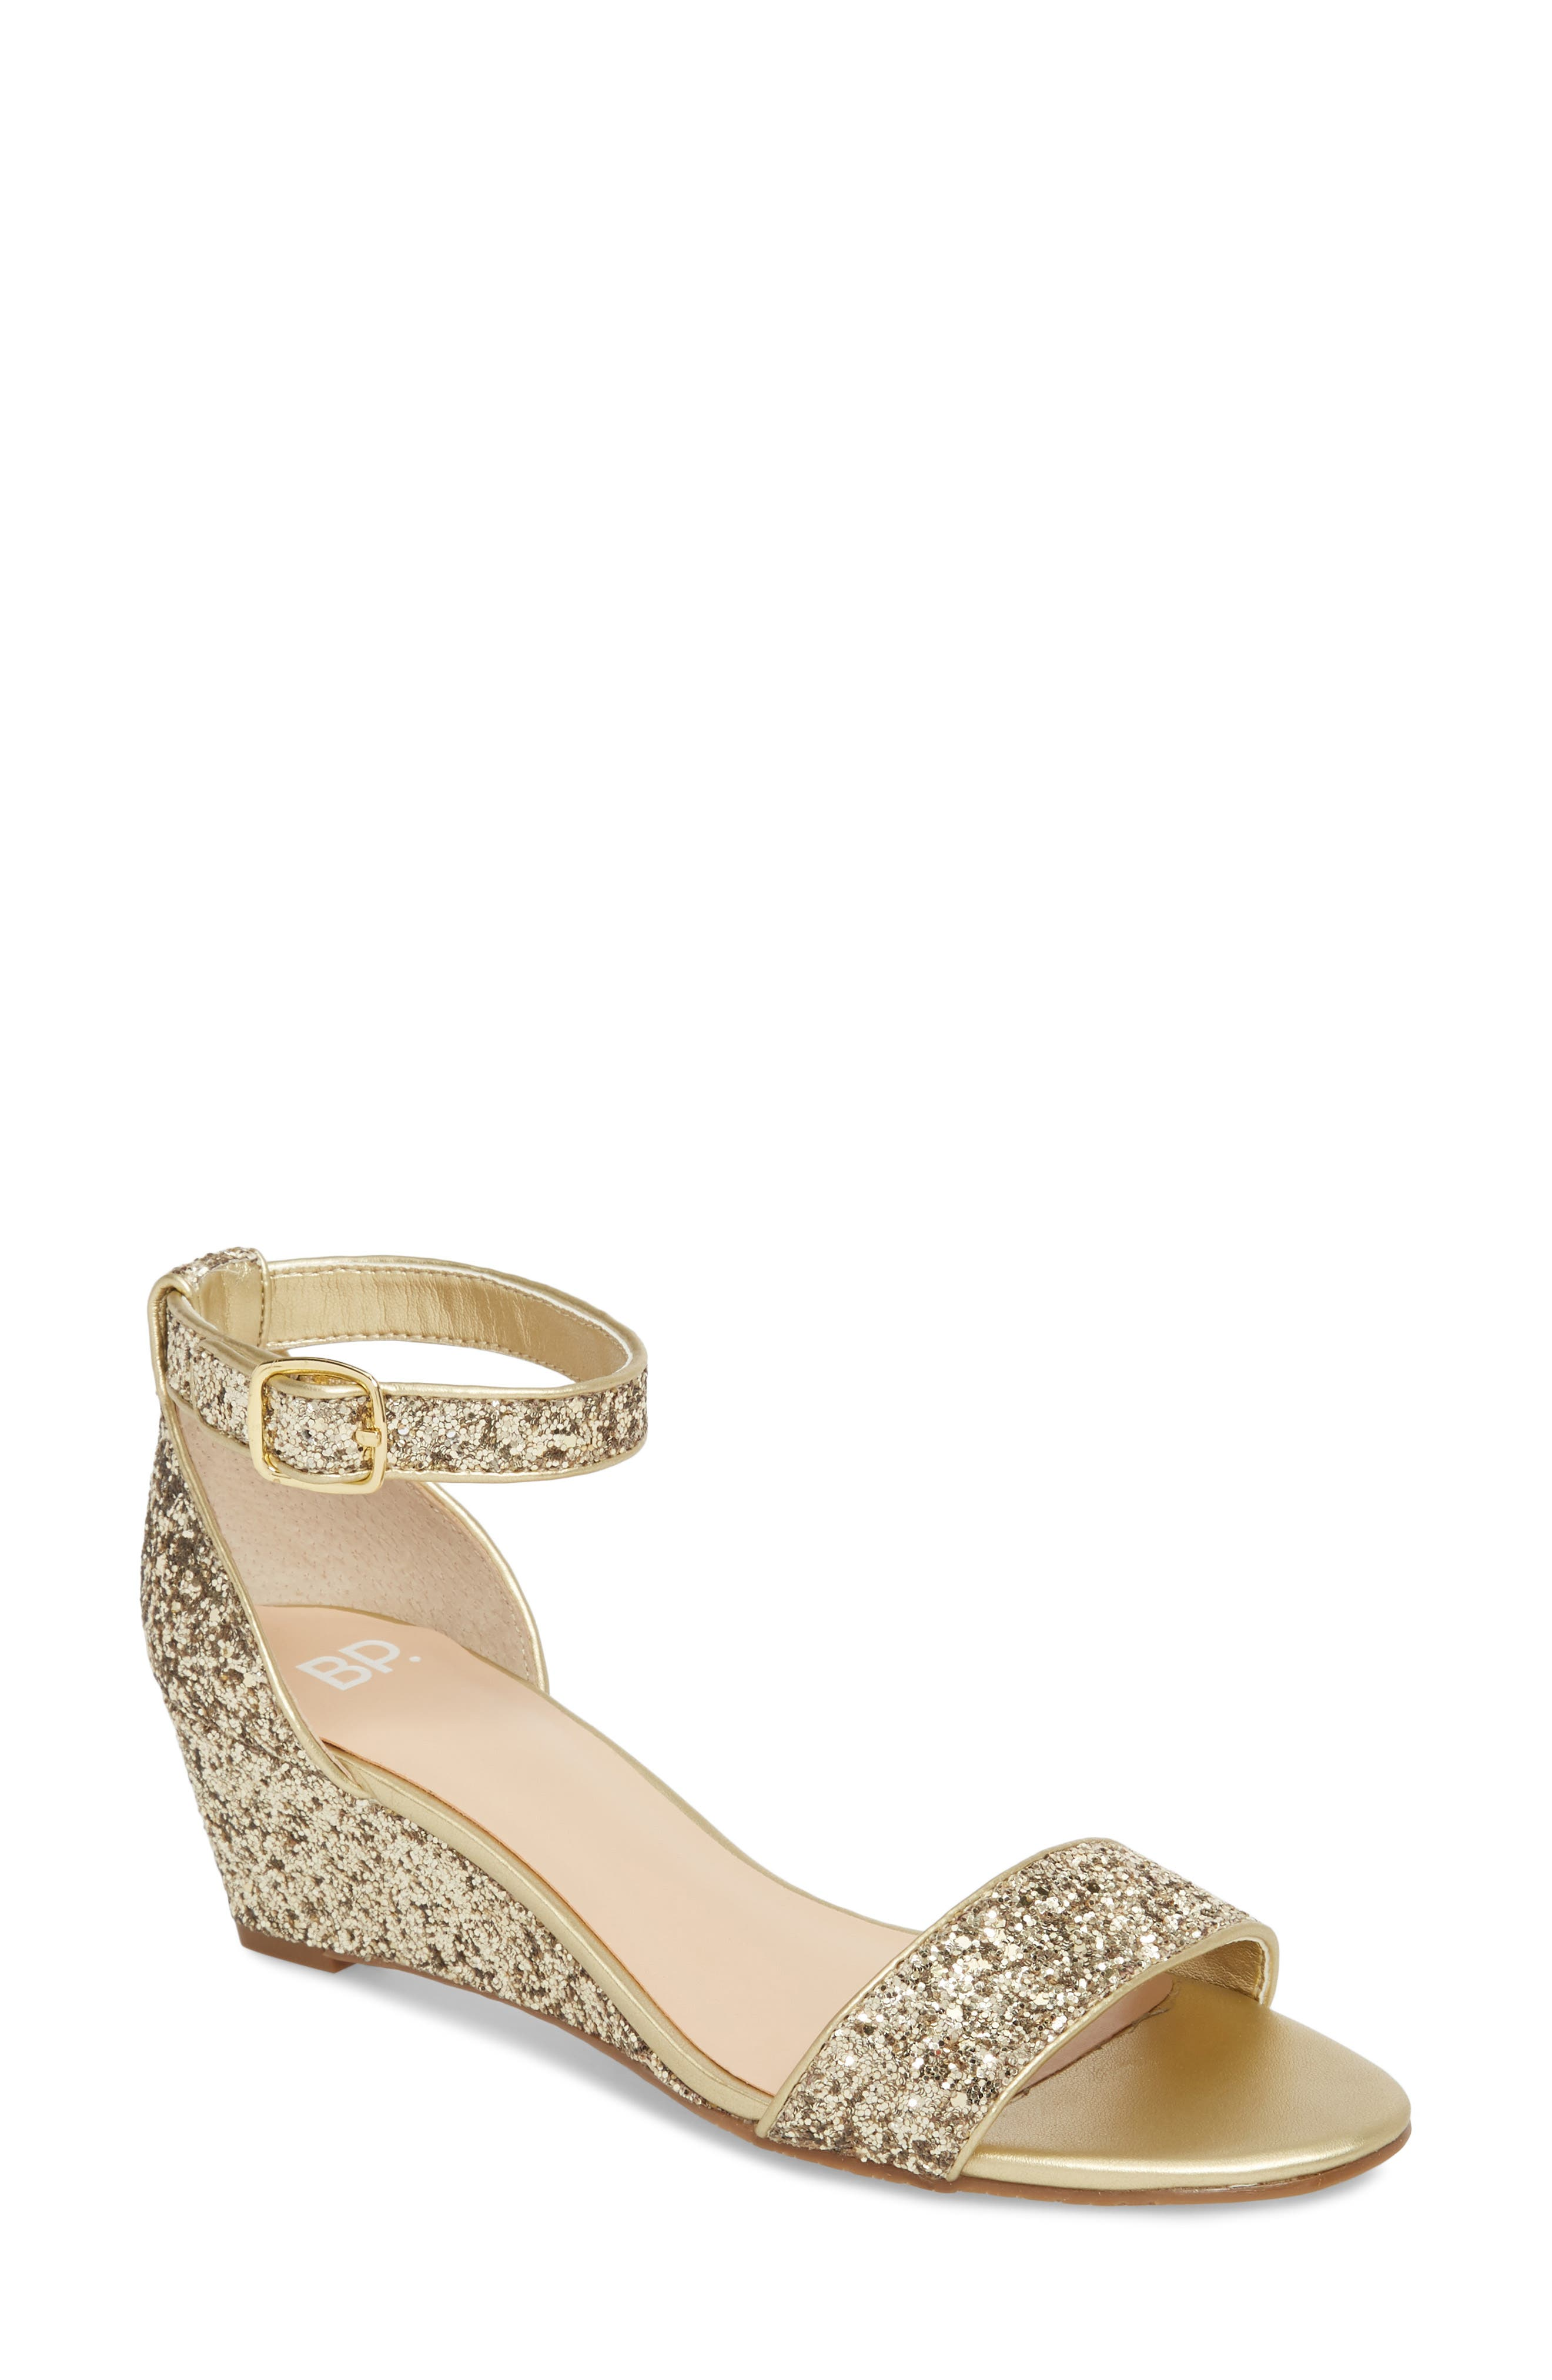 'Roxie' Wedge Sandal,                         Main,                         color, GOLD GLITTER